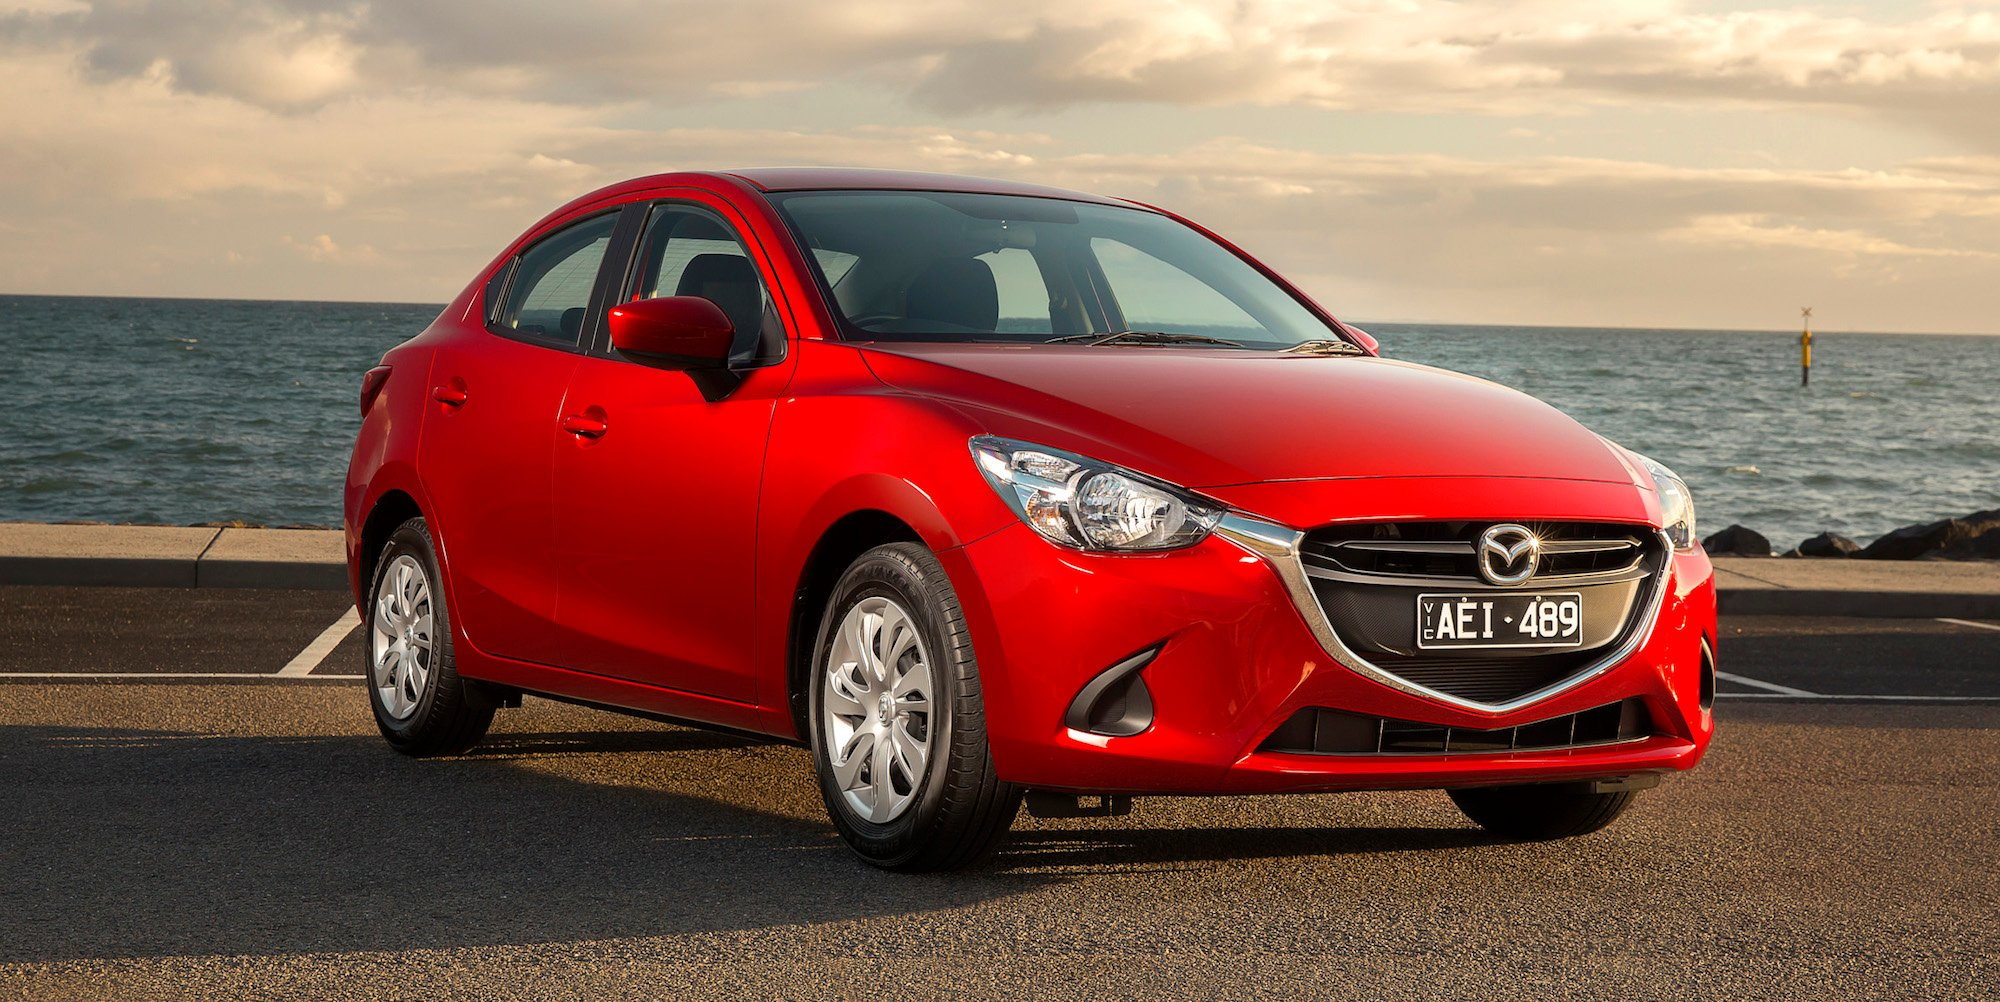 2016 mazda 2 sedan review caradvice. Black Bedroom Furniture Sets. Home Design Ideas